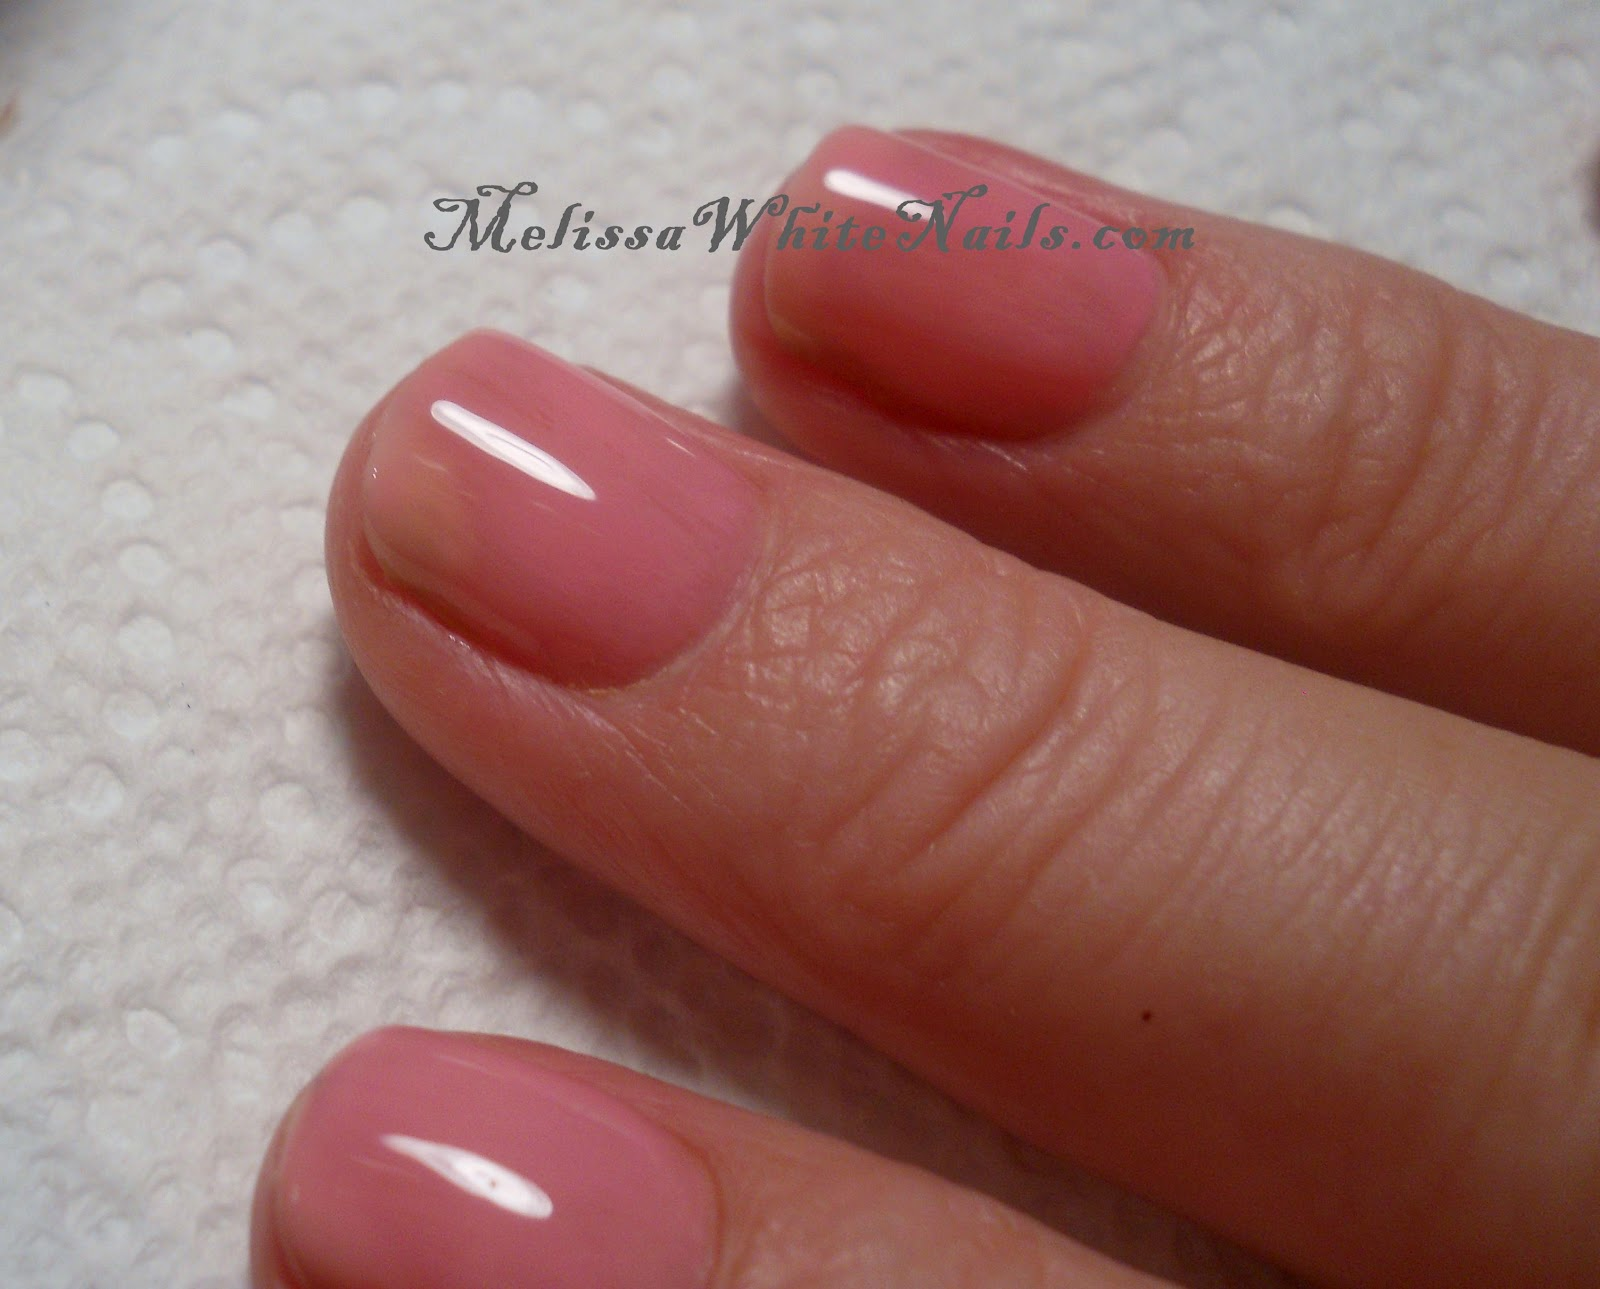 Adventures Of A Nail Tech Gelish Manicures